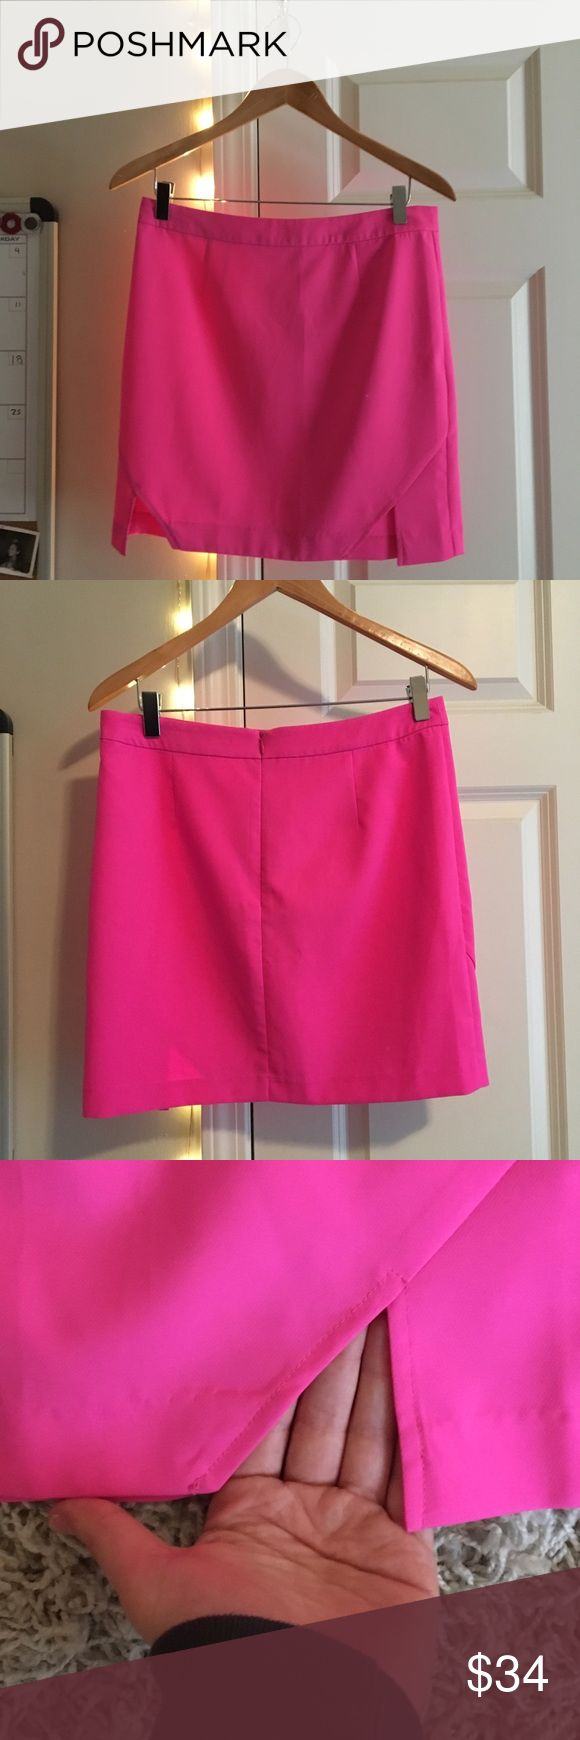 NWOT Hot Pink Skirt this awesome hot pink skirt with adorable tiny slits in the front is perfect for any occasion this summer! this skirt goes well with a Blouse or a tight white or black shirt! Can be worn with anything! This is a US 6, AUS 10, EUR 38 Skirts Mini